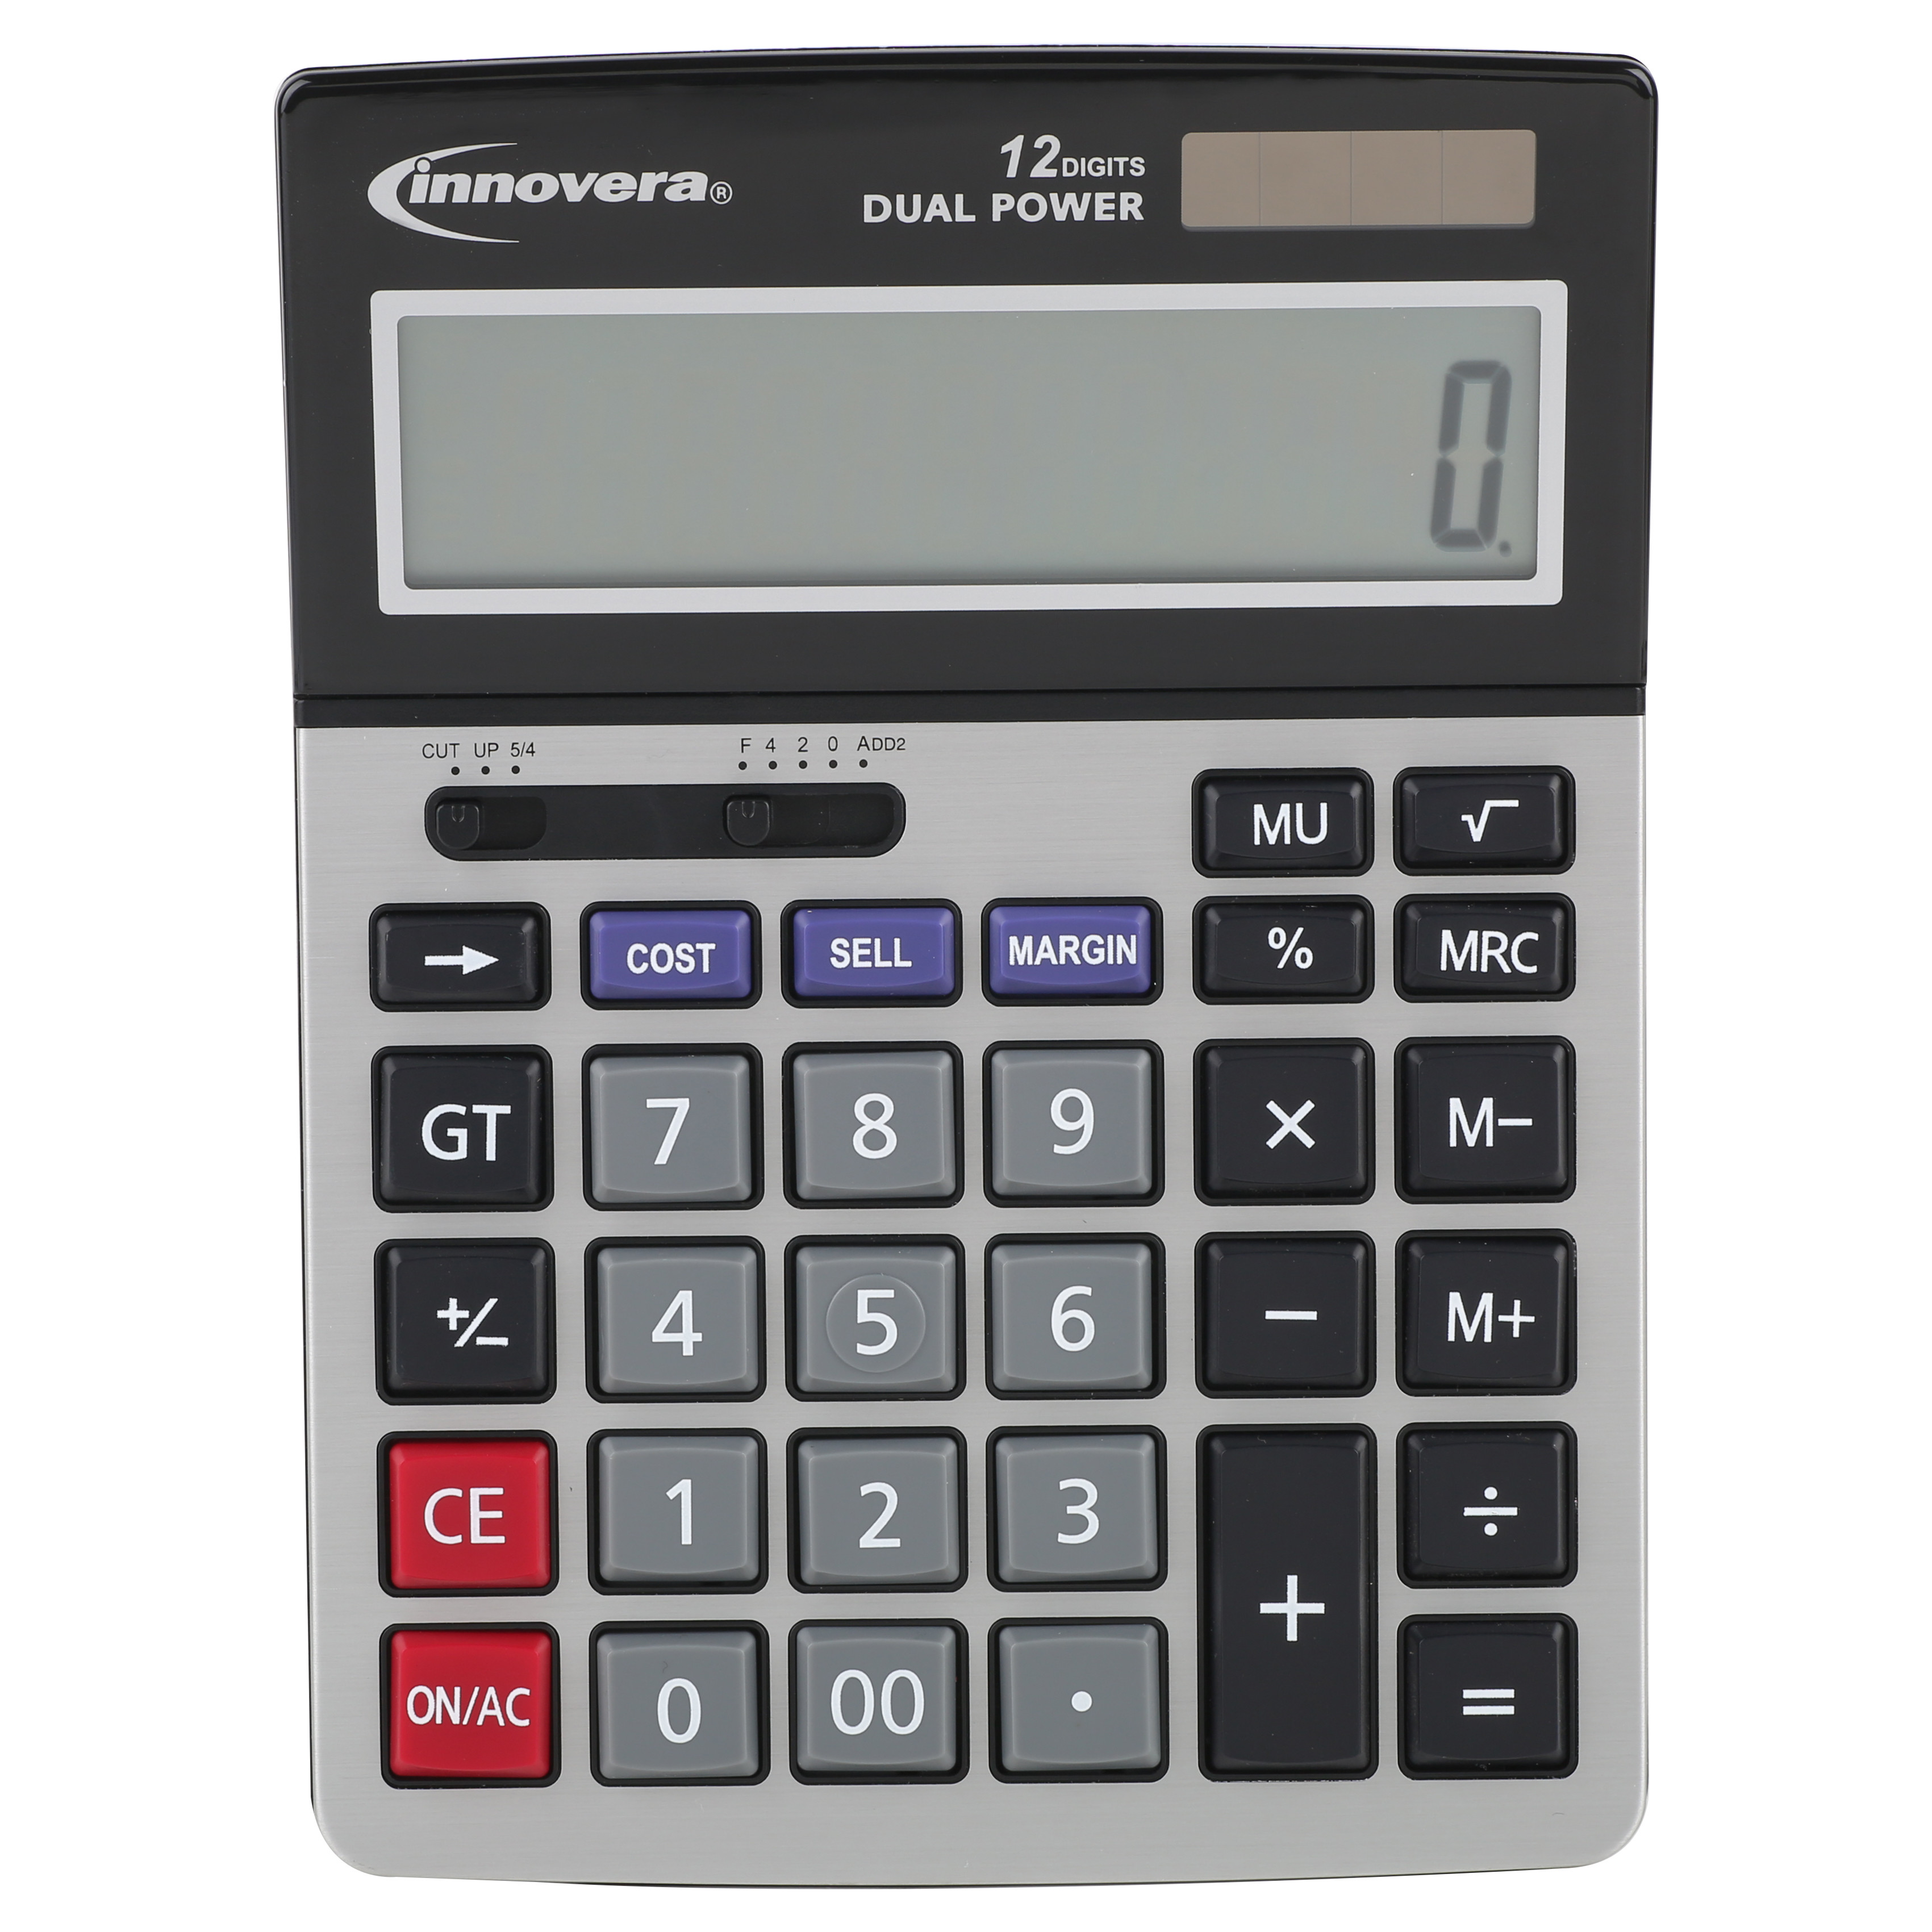 Innovera 15968 Minidesk Calculator, 12-Digit LCD